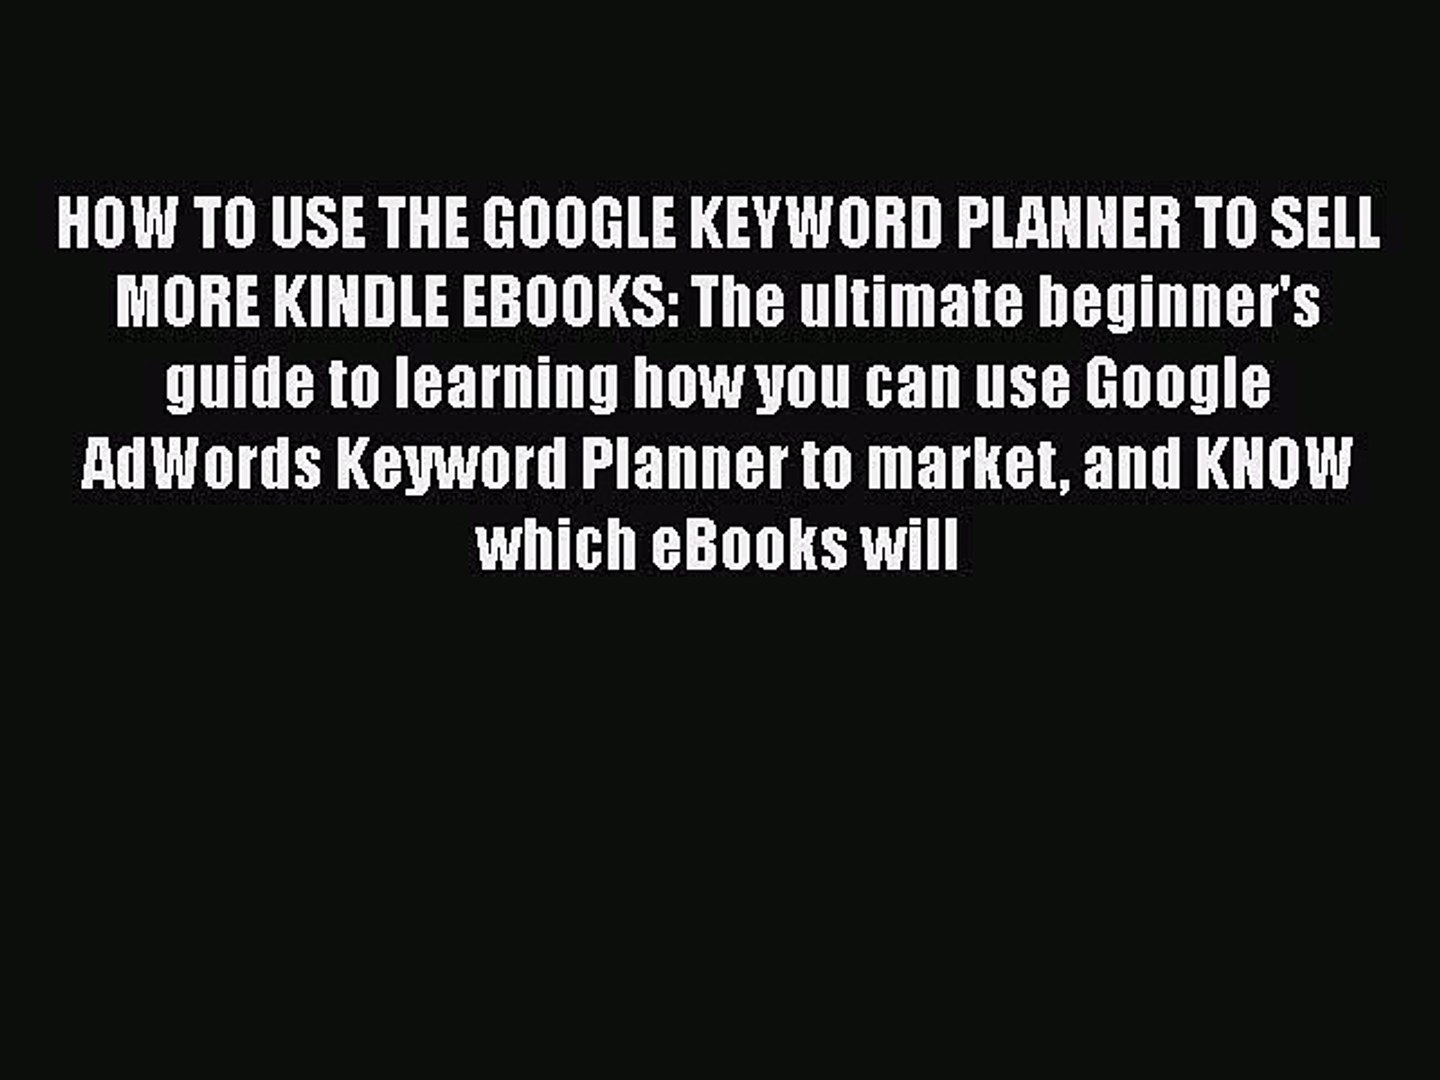 Download HOW TO USE THE GOOGLE KEYWORD PLANNER TO SELL MORE KINDLE EBOOKS: The ultimate beginner's